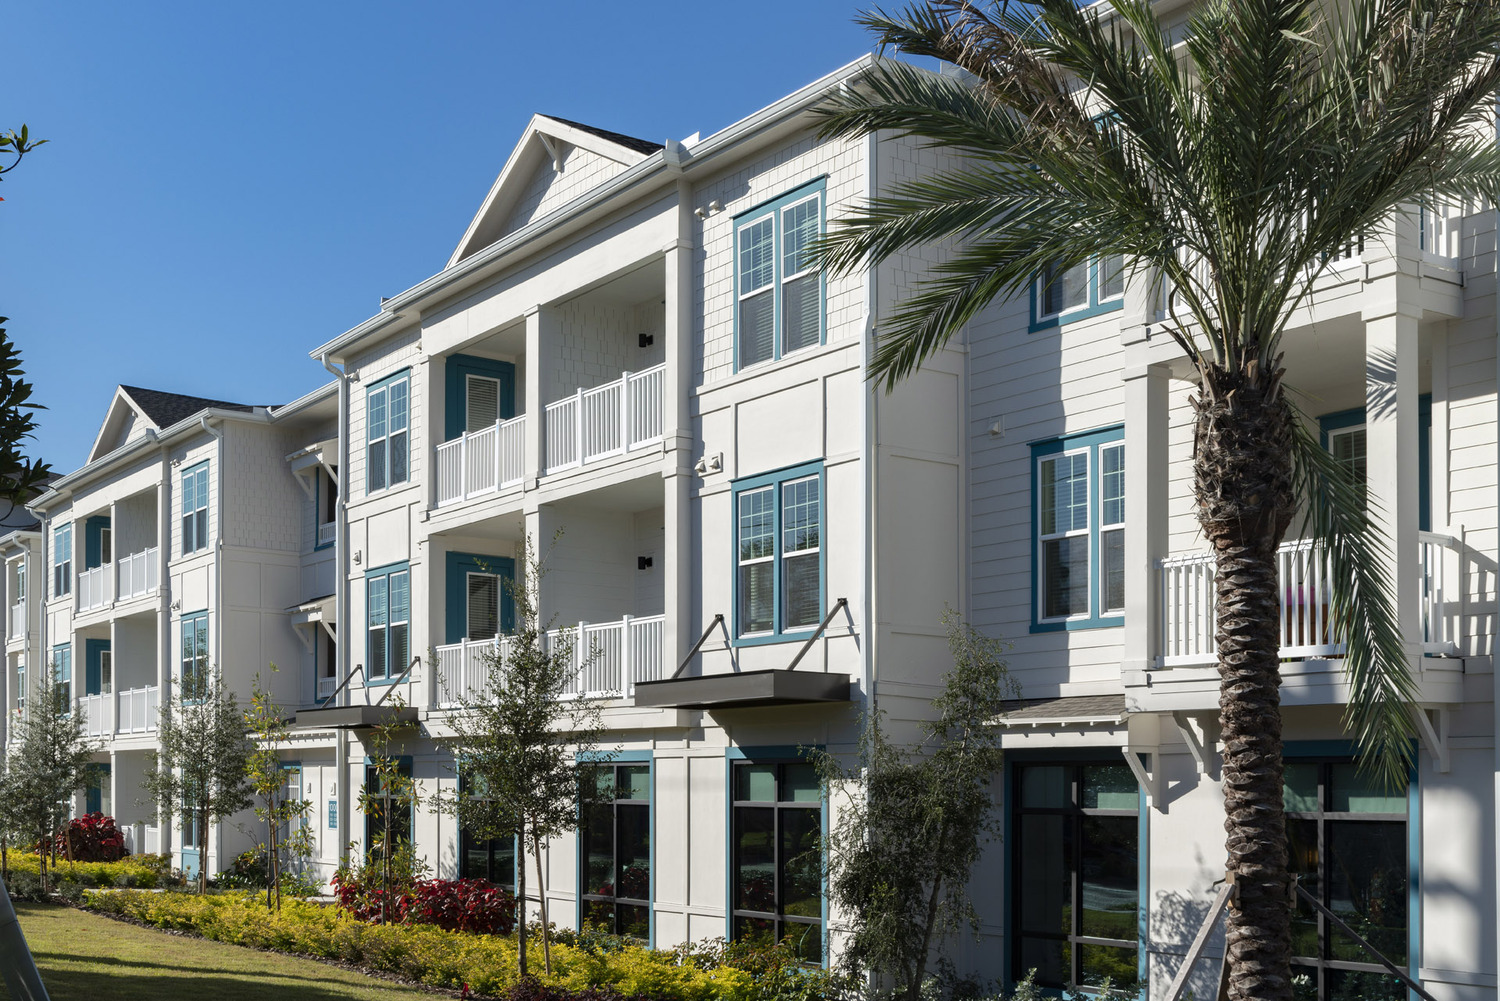 CBG builds The Rosery, a 224-Unit Luxury Apartment Community Across Four Buildings in Largo, FL - Image #8